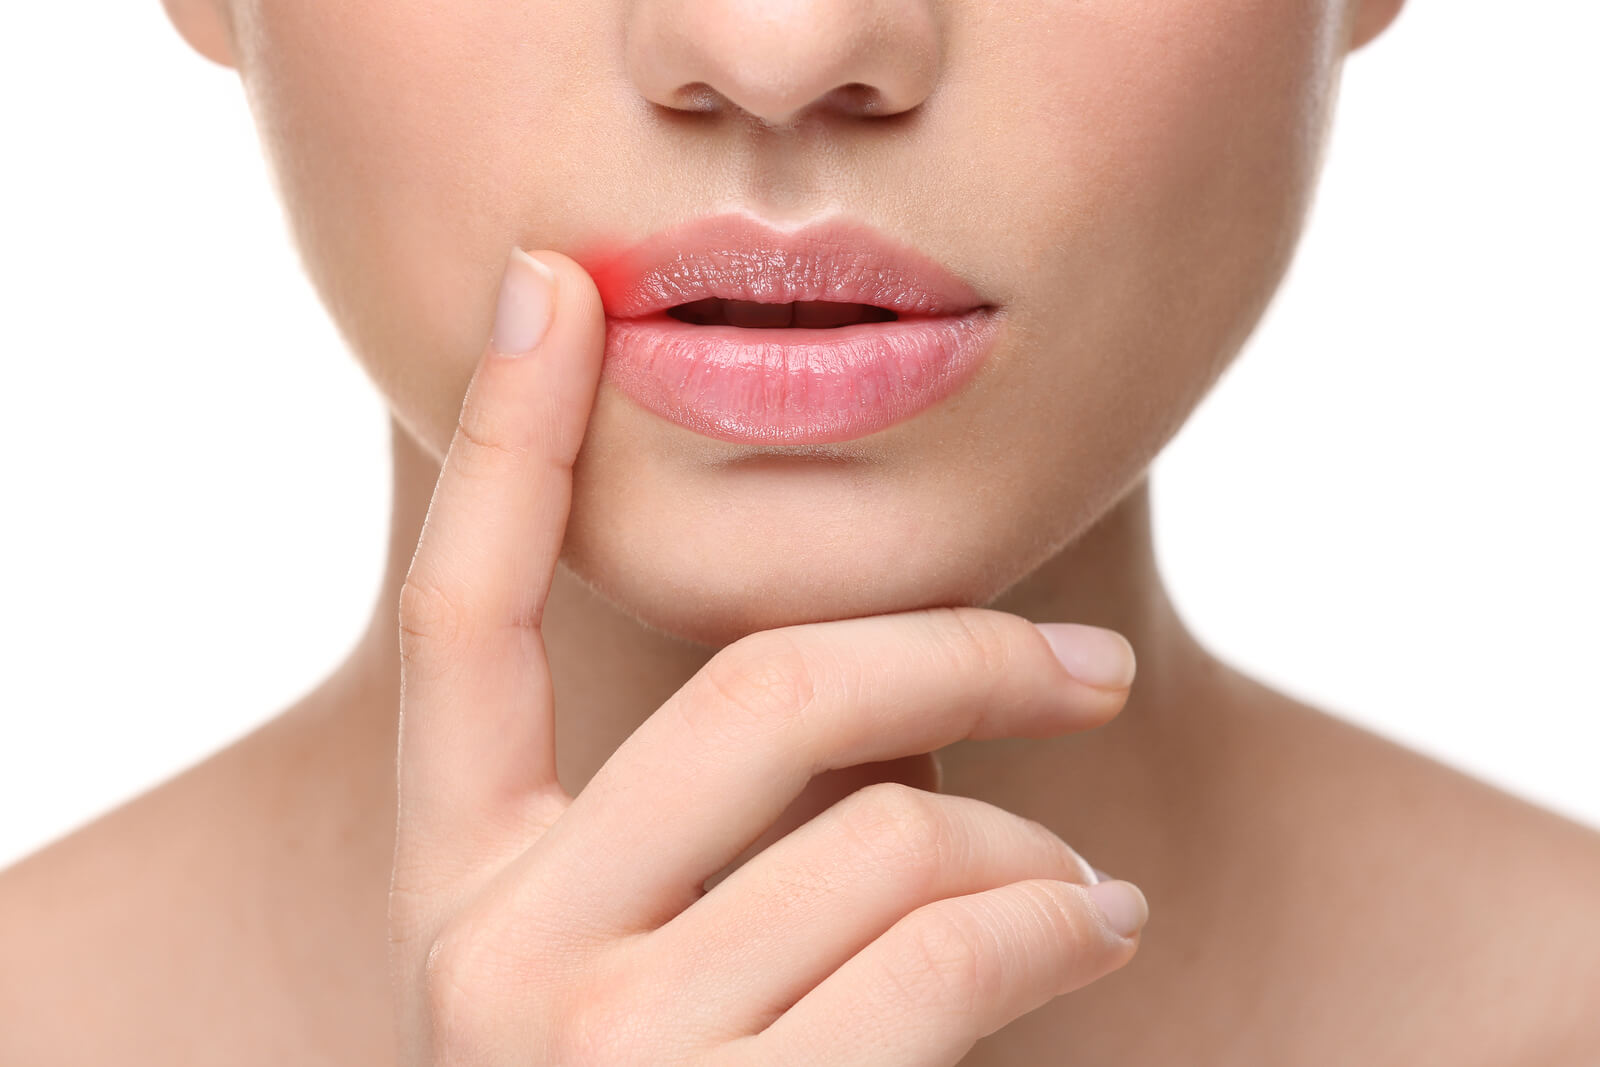 How to get rid of cold sore on mouth